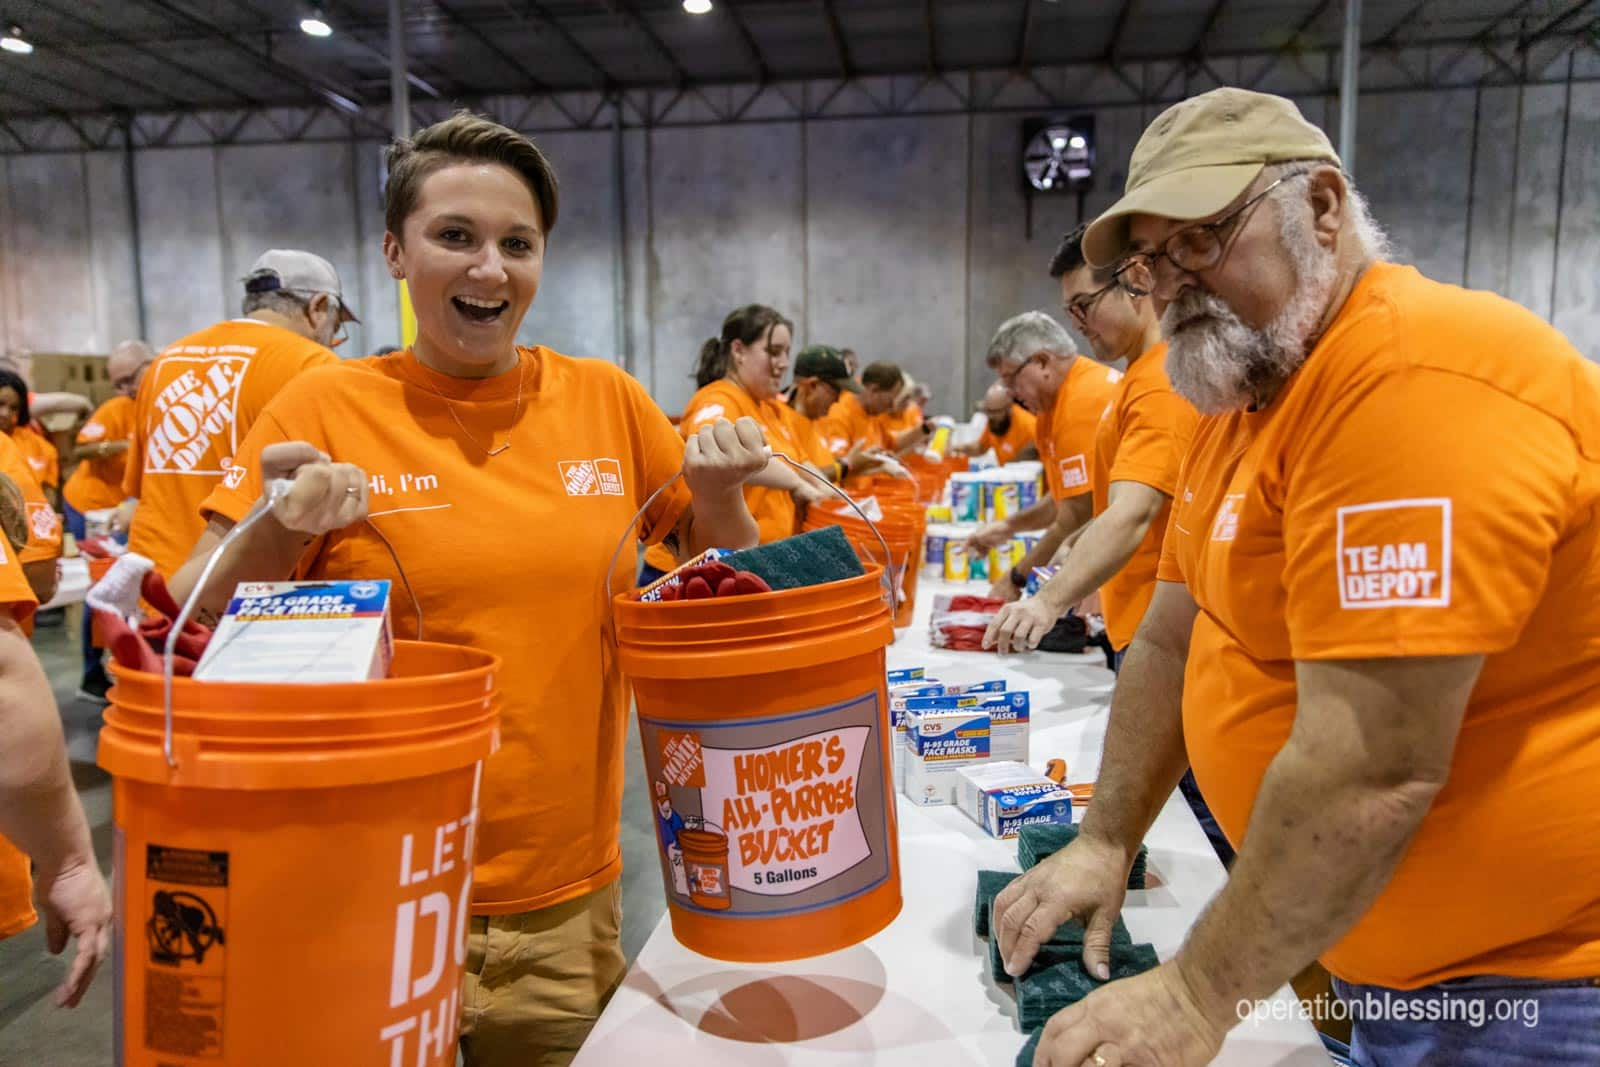 Disaster Relief Kits with The Home Depot - Operation Blessing